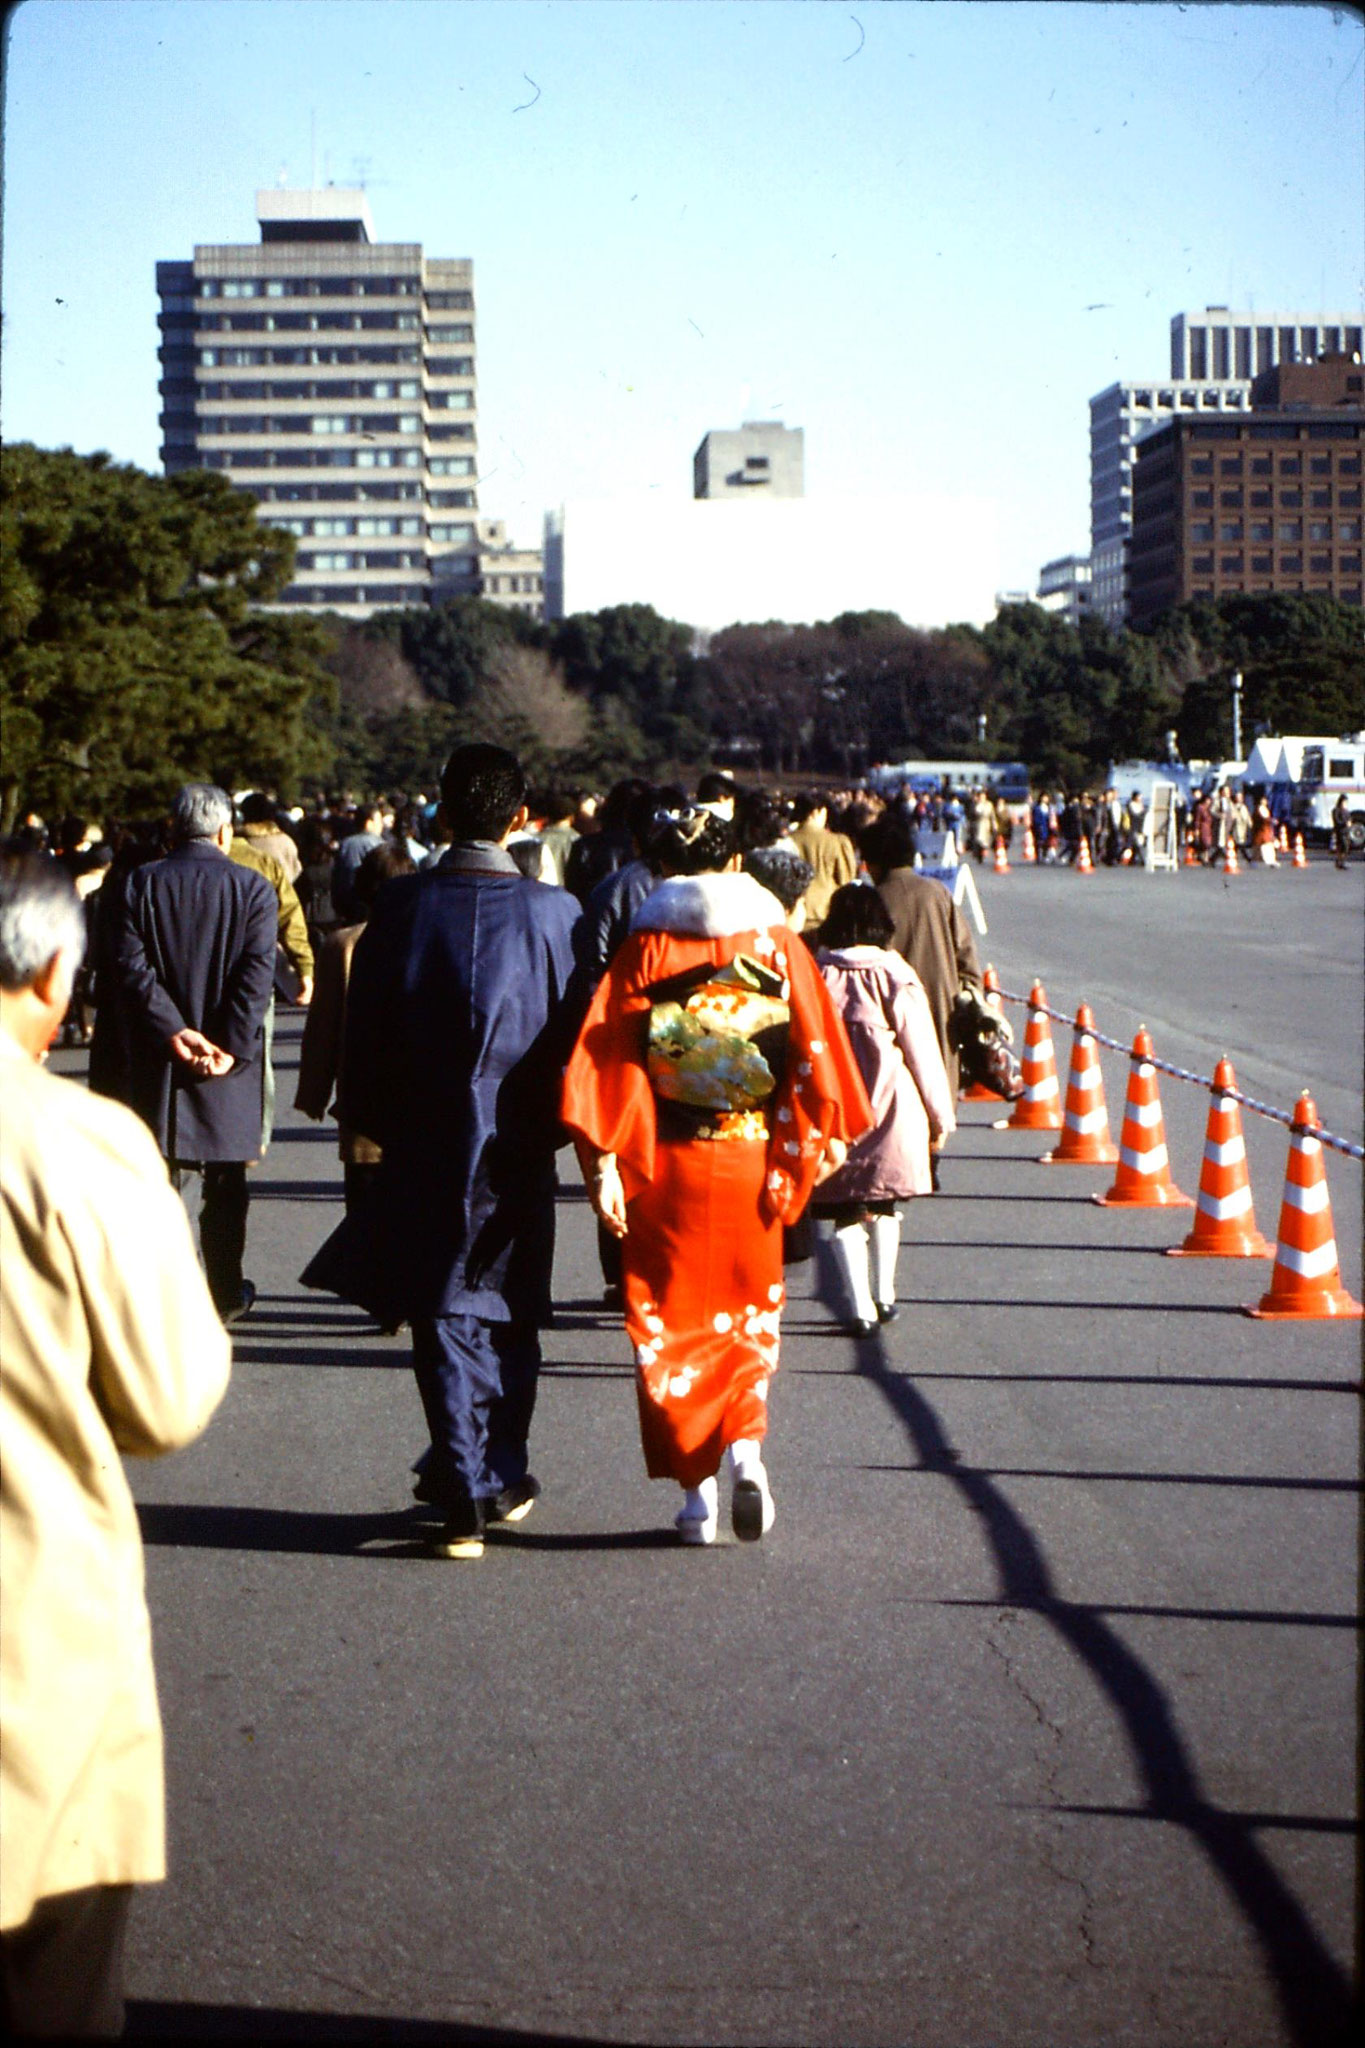 2/1/1989: 31: Imperial Palace